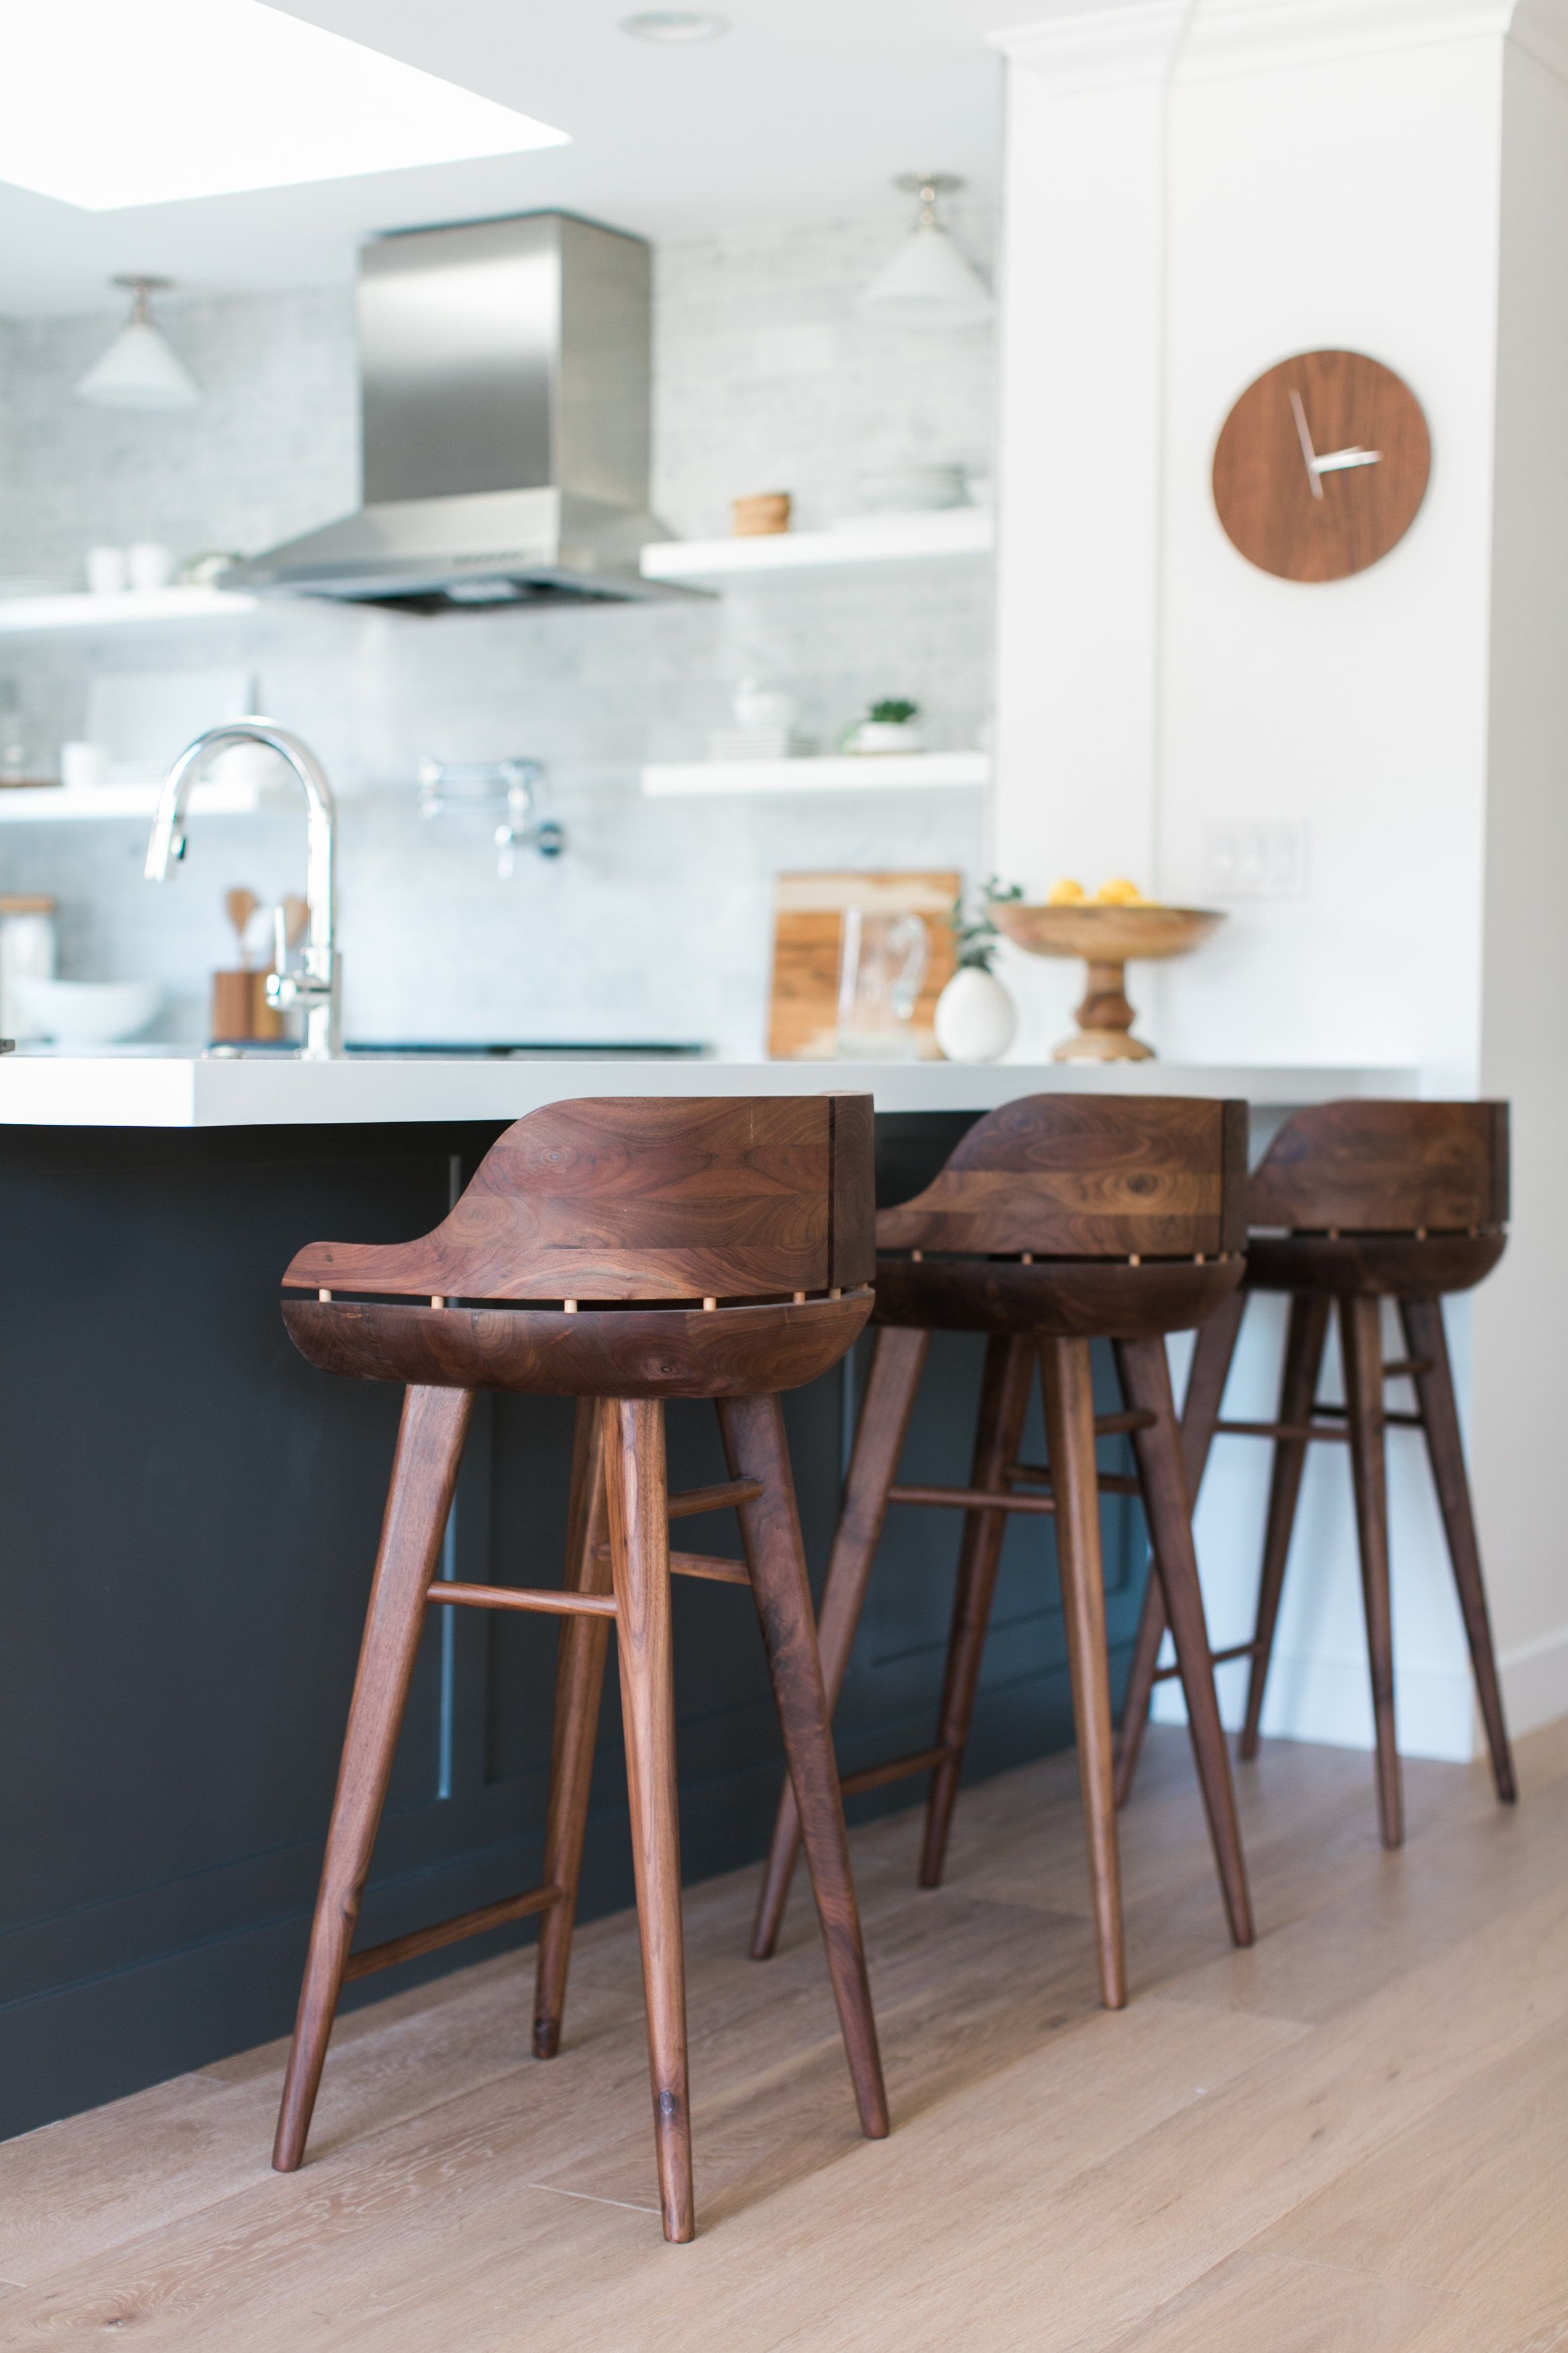 stool countertop kitchen height island breakfast ideas stools table counter bar alluring chairs